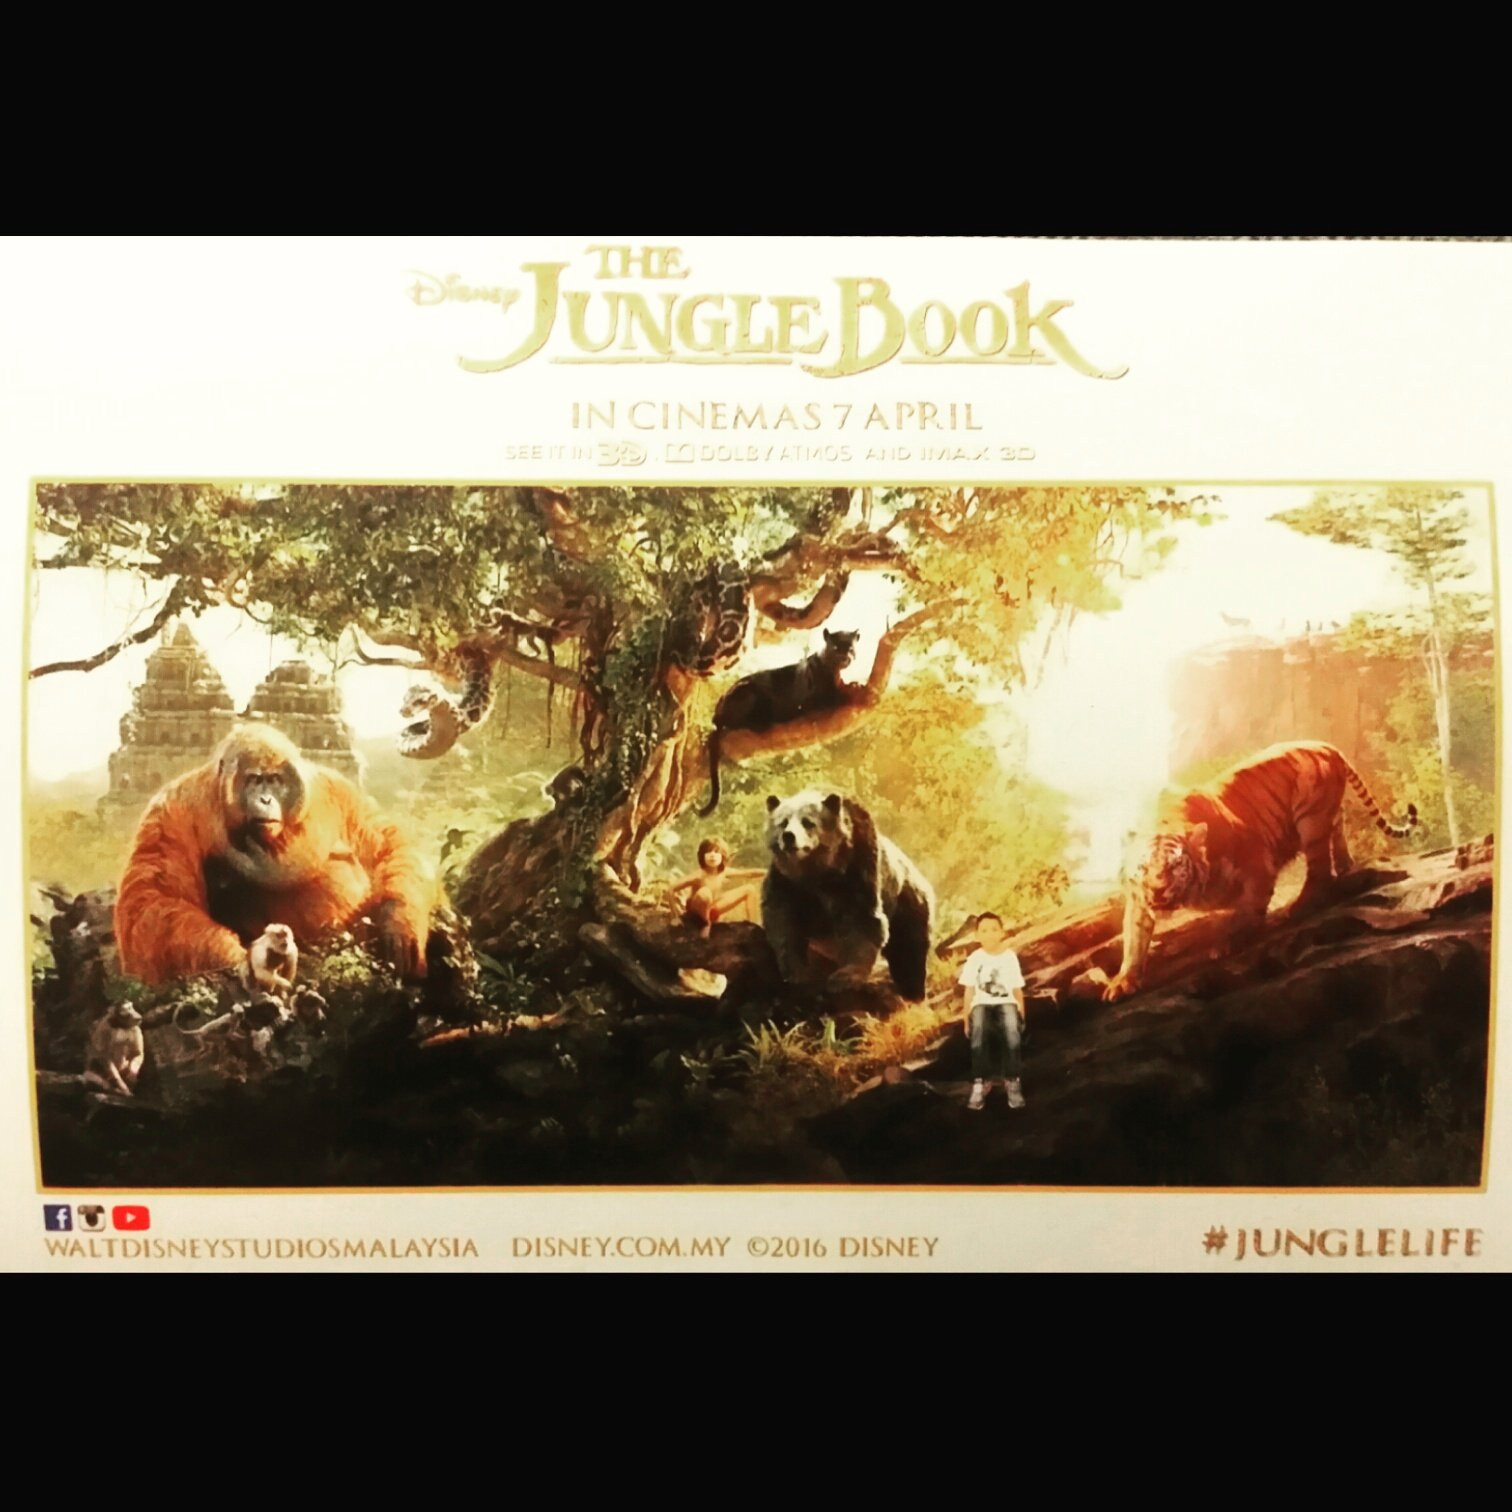 #junglebookmovie was quite good. I pity those who left their imagination at home while they watch this excellent on-screen intepretation of #rudyardkipling 's work. #geekgoestothecinemas #moviebuff